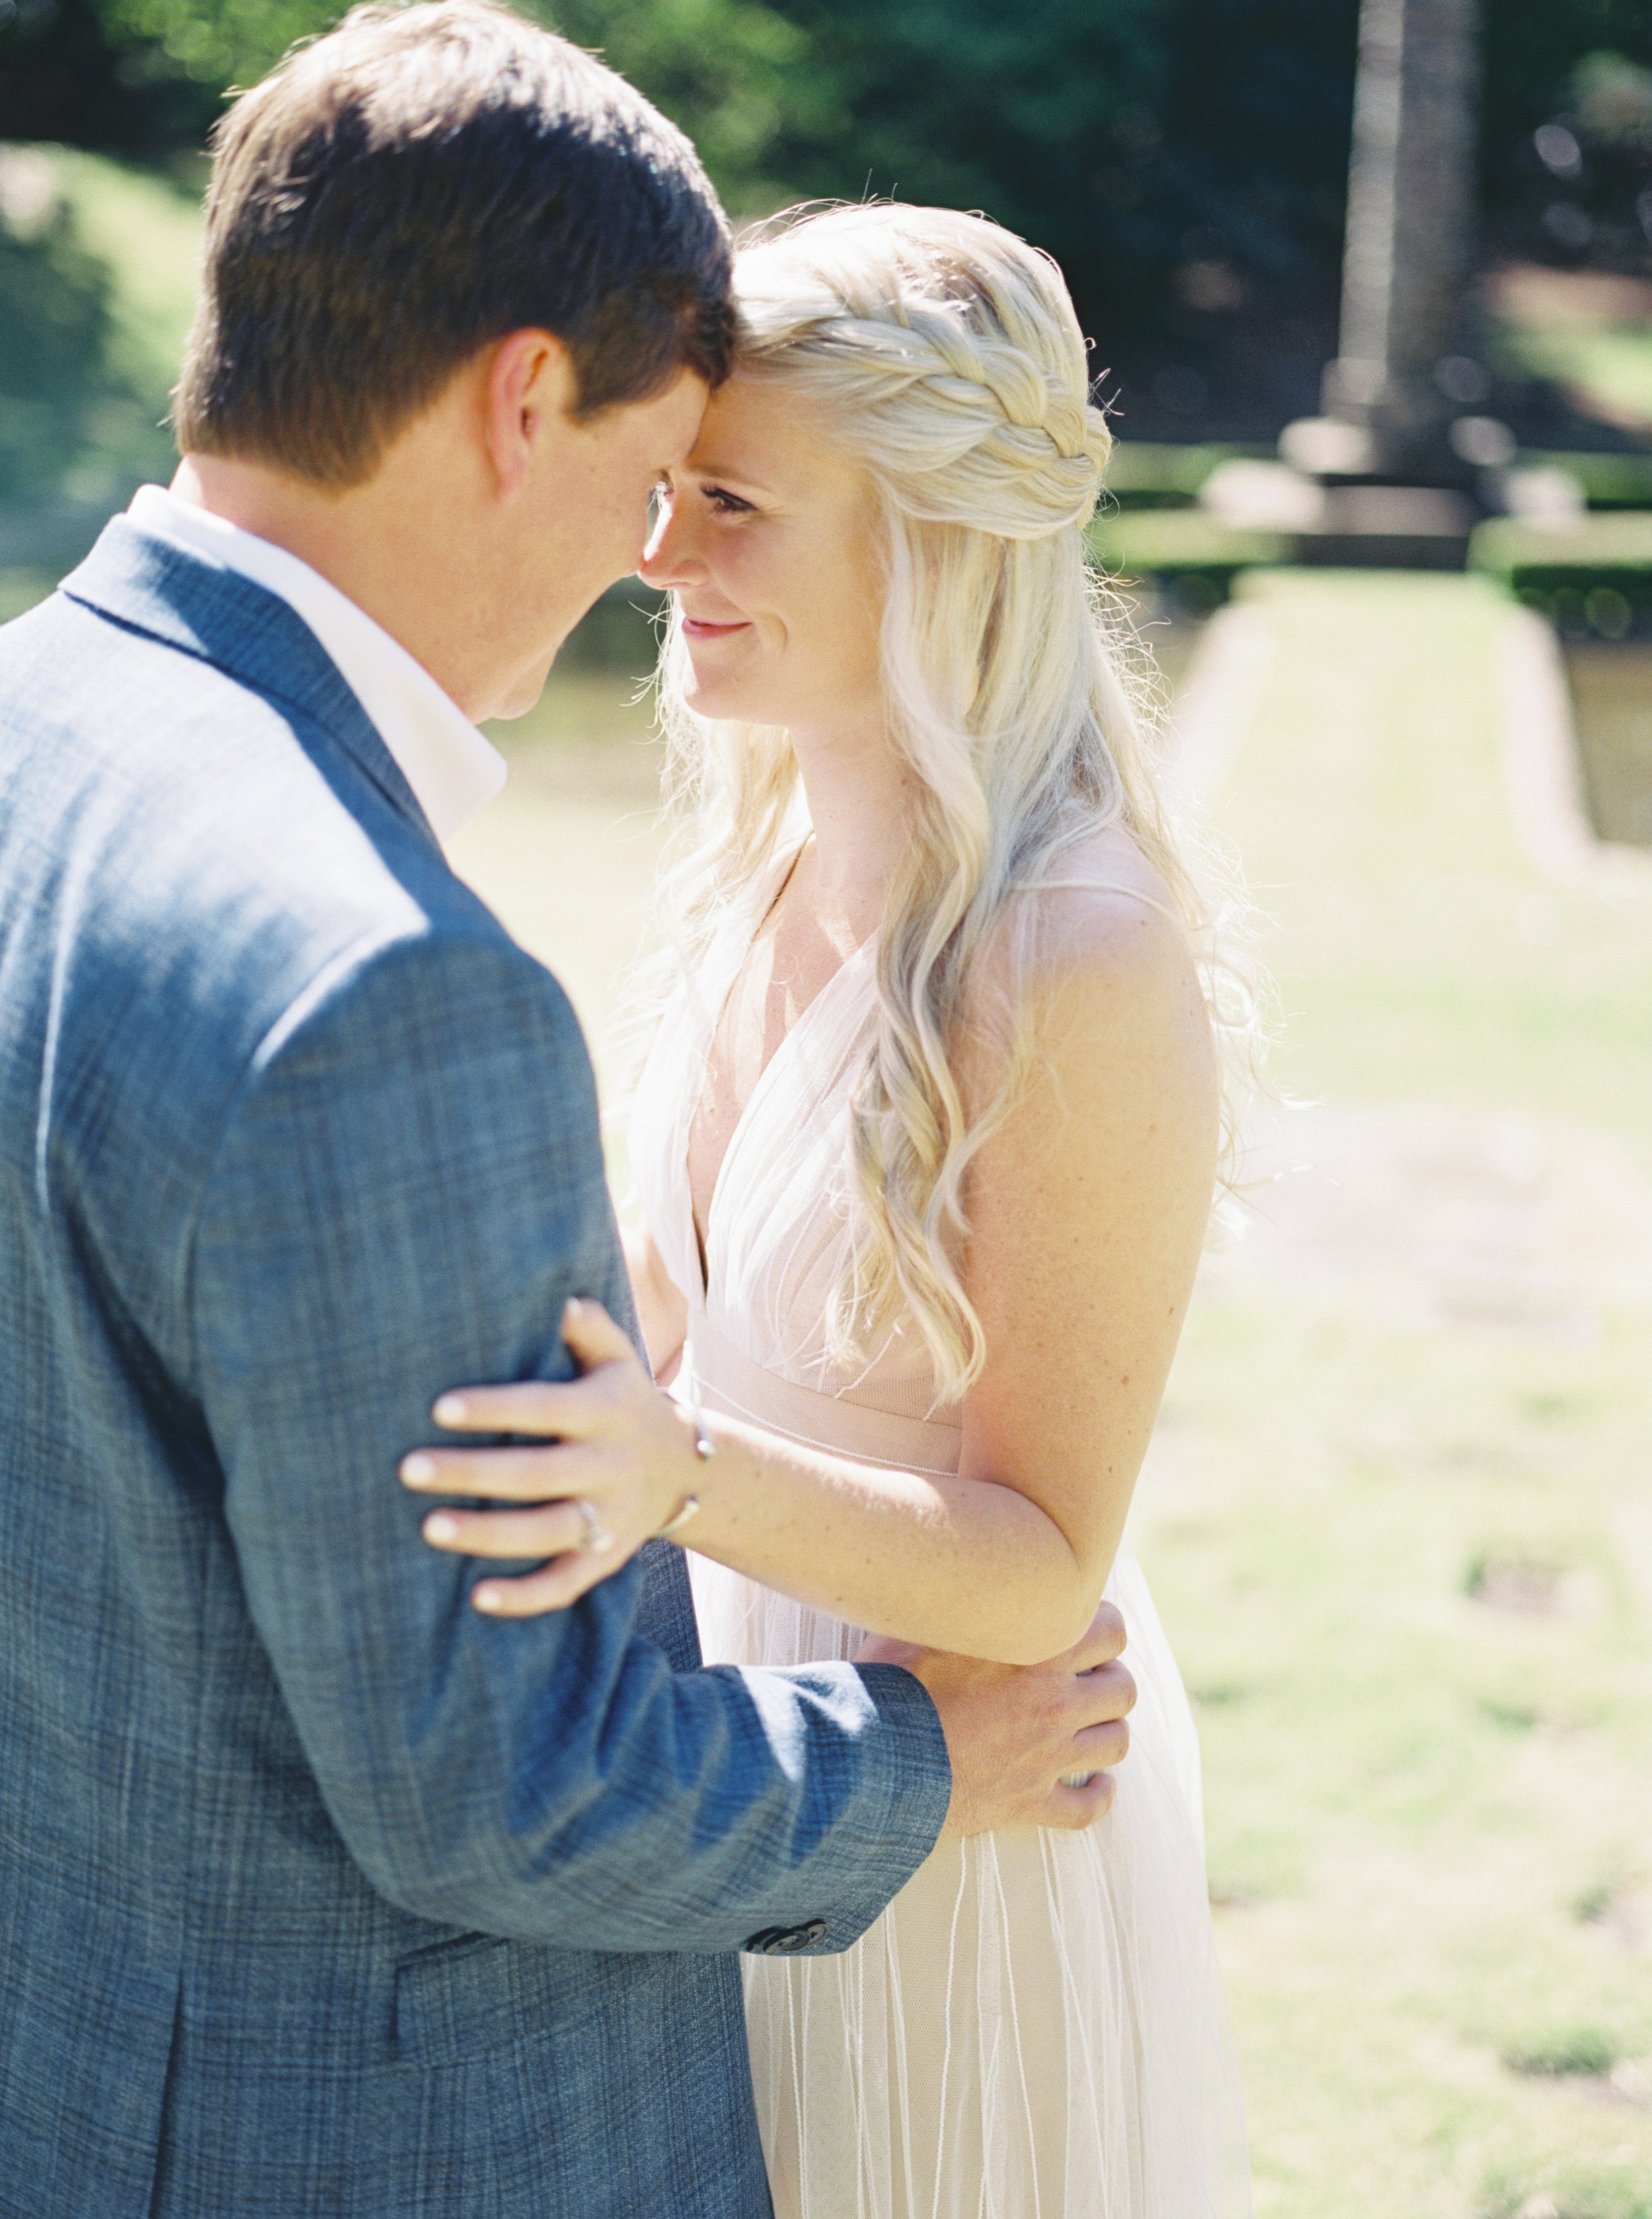 Erin_Johnny_Engagement_Dunaway_Gardens_Georgia_Film_Fallen_Photography-9.JPG